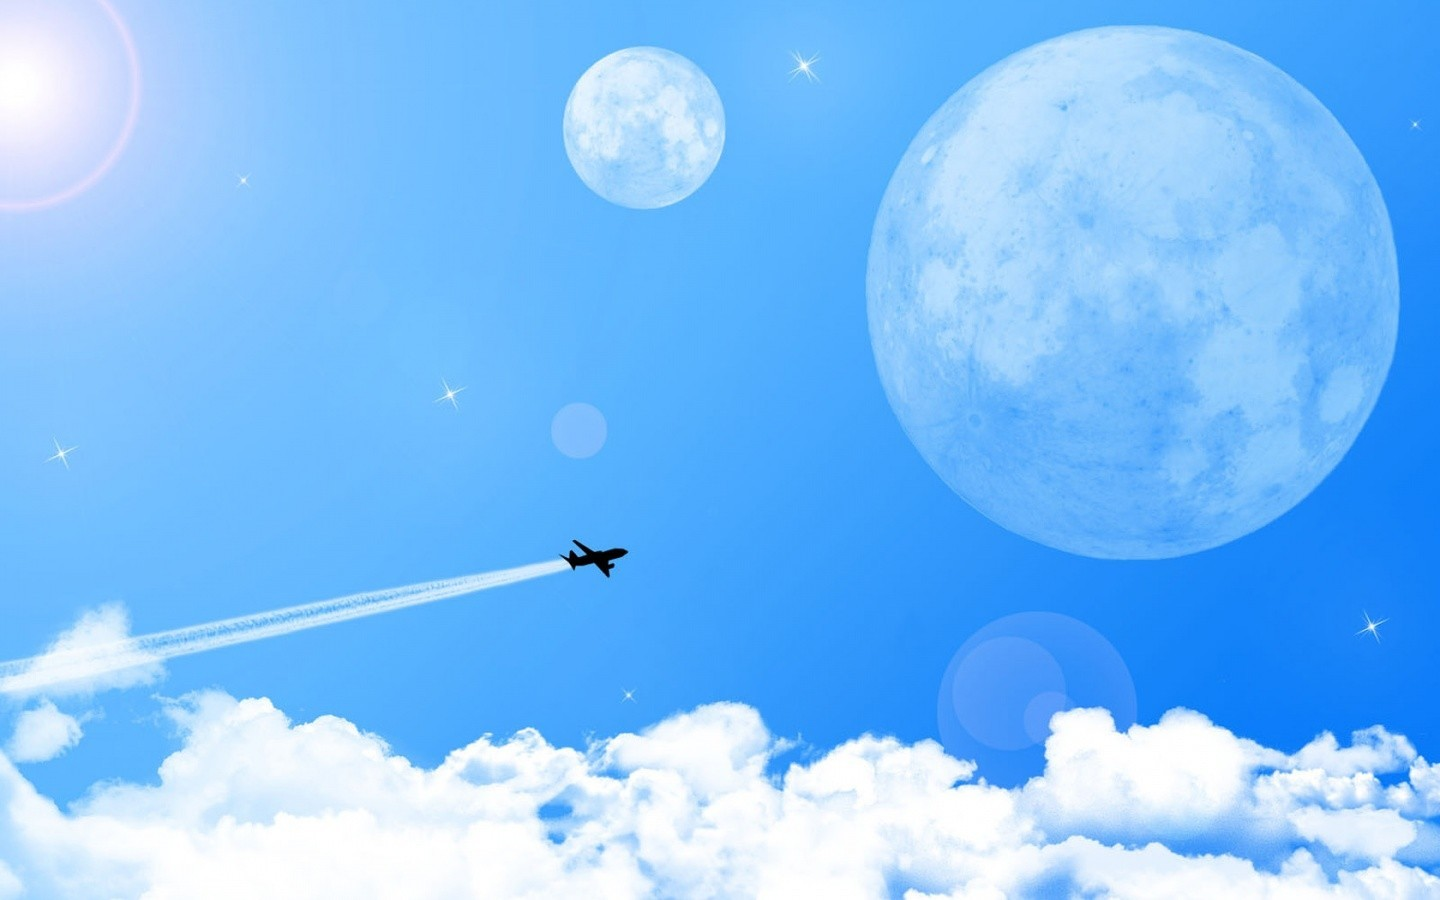 vectors planes skyscapes HD Wallpaper